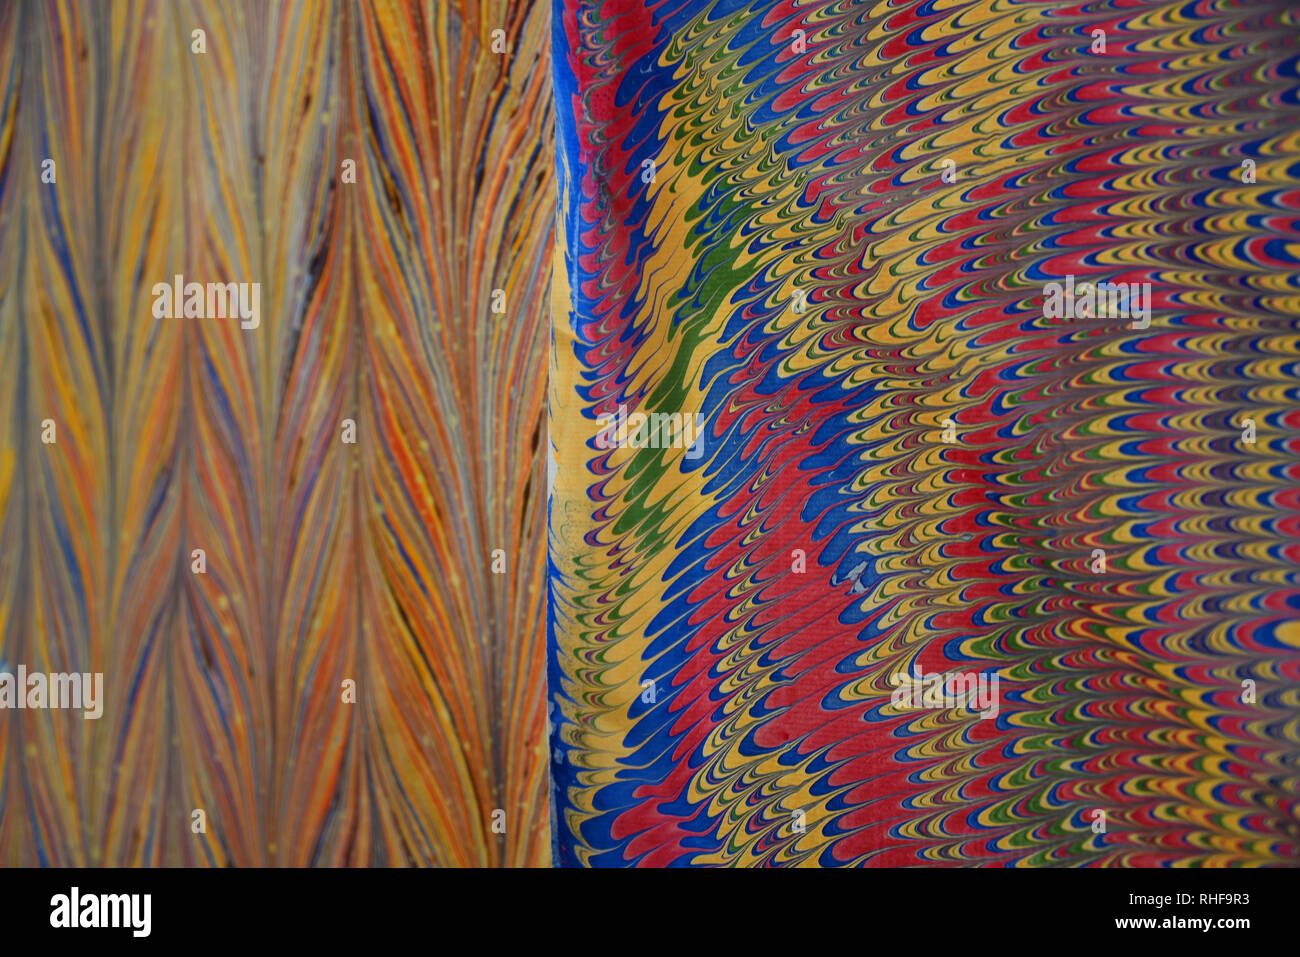 Amazing vivid colors and contrasting patterns on this shop displayed paper creates a stunning background. - Stock Image